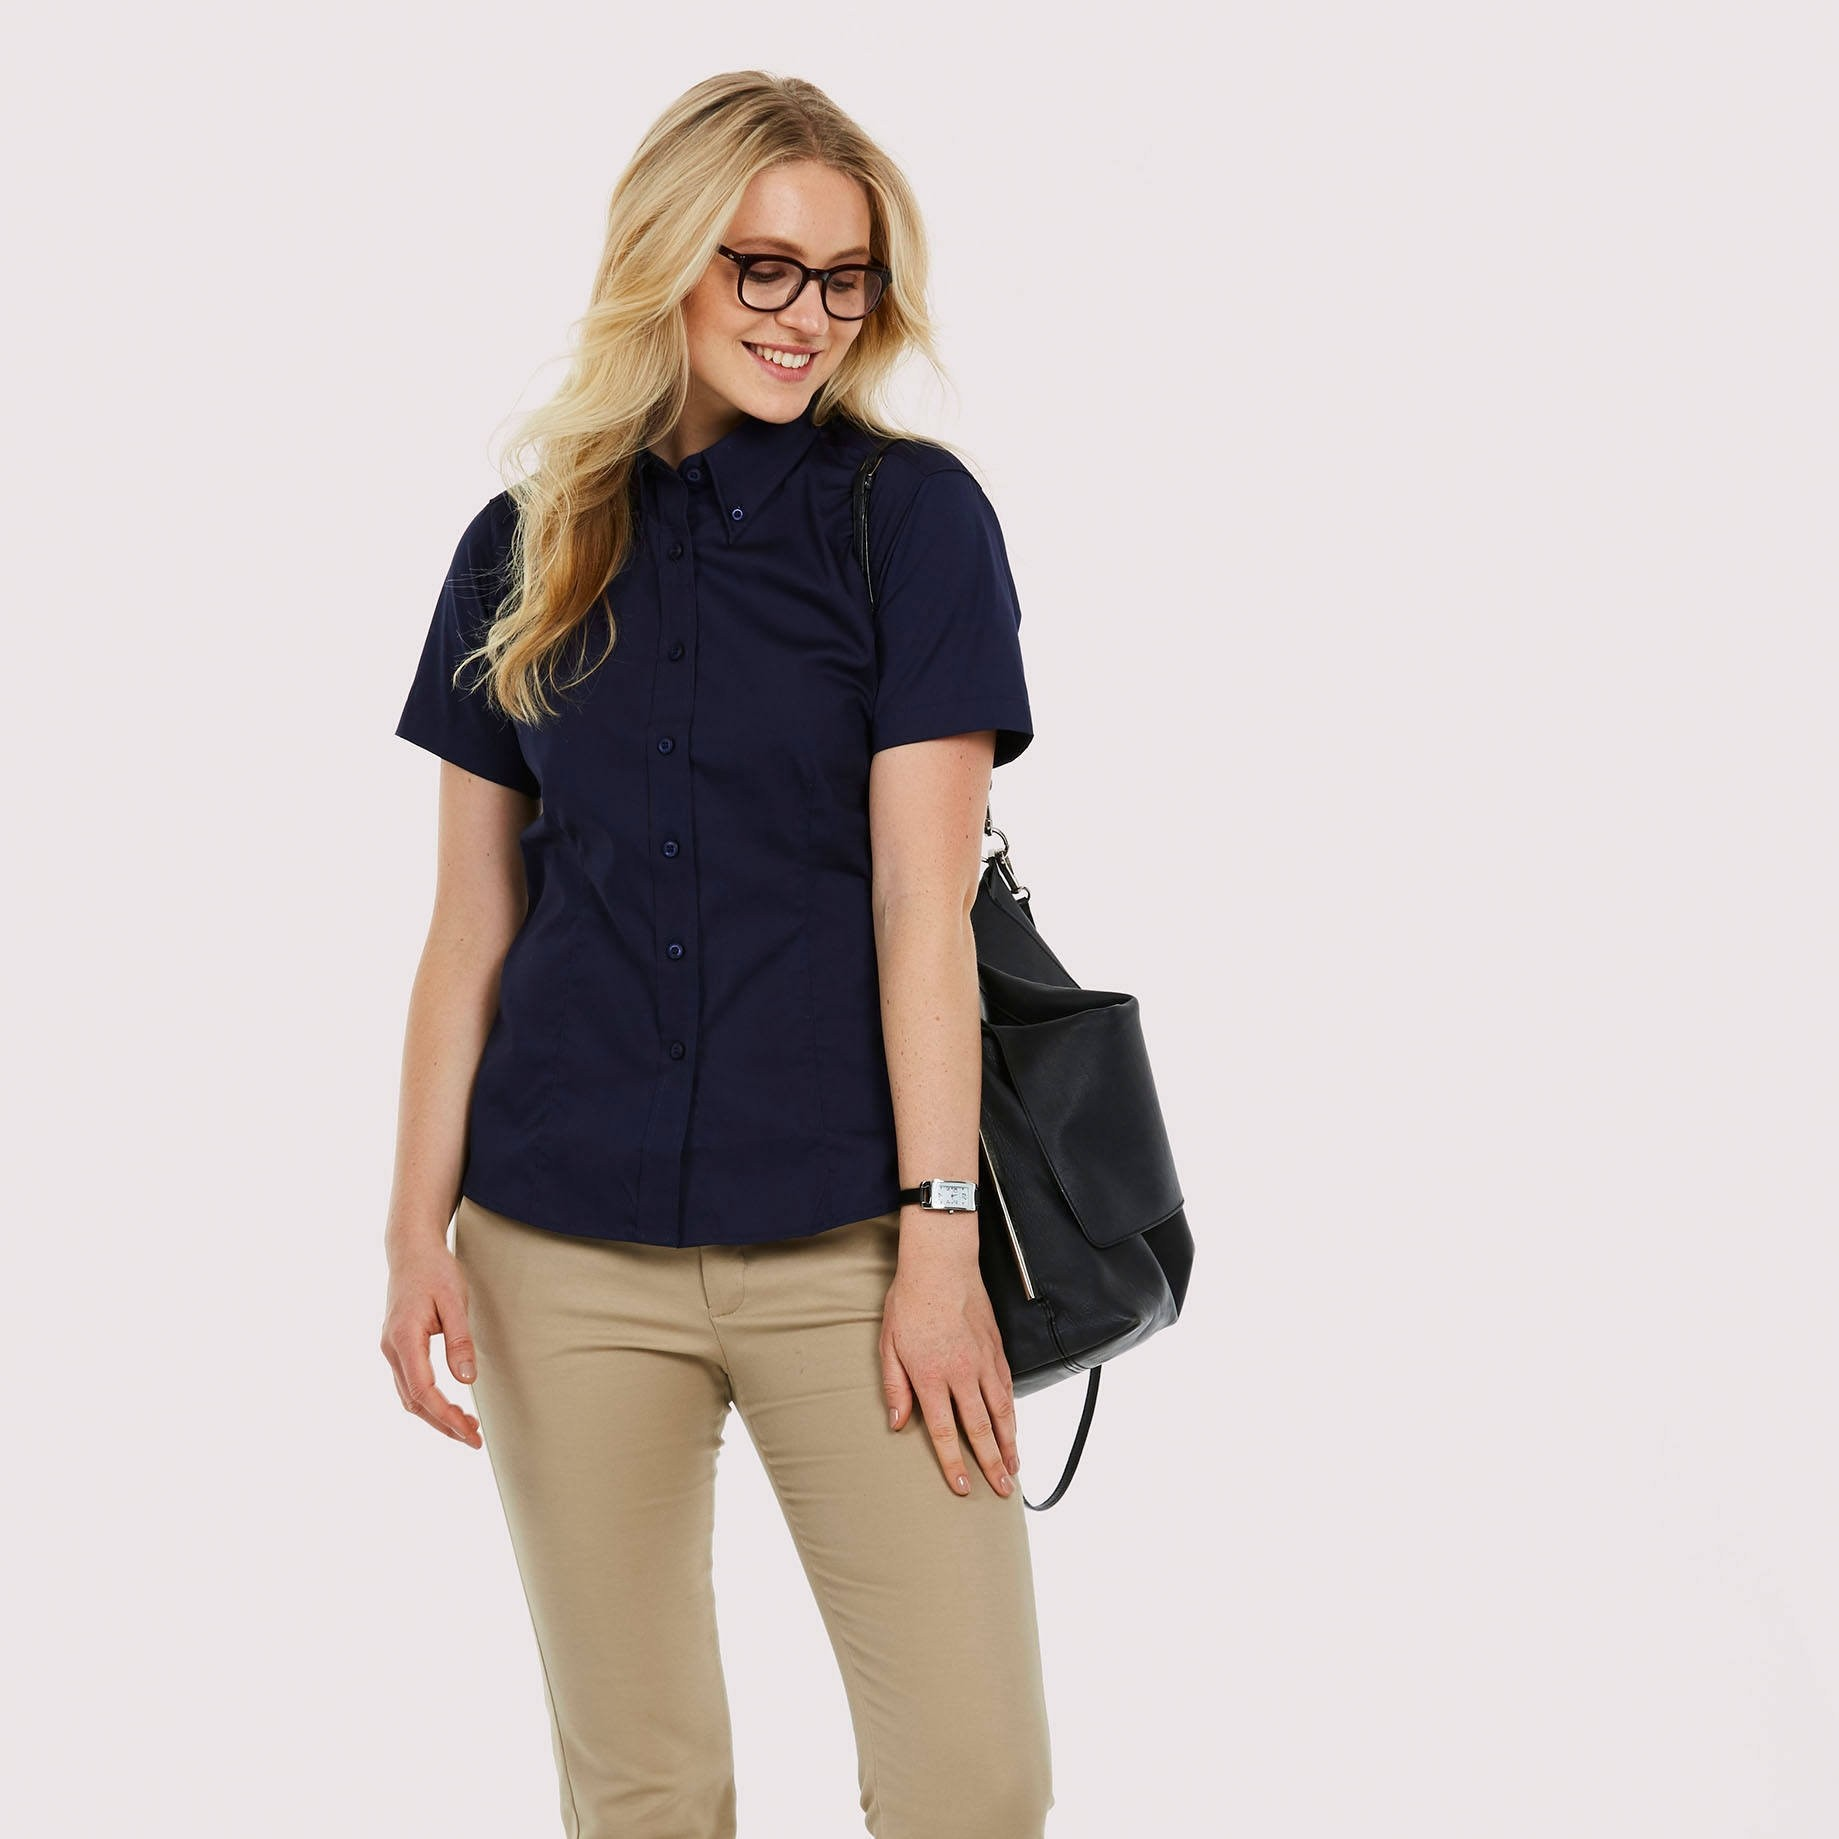 UC704 ladies pinpoint oxford short sleeved shirt